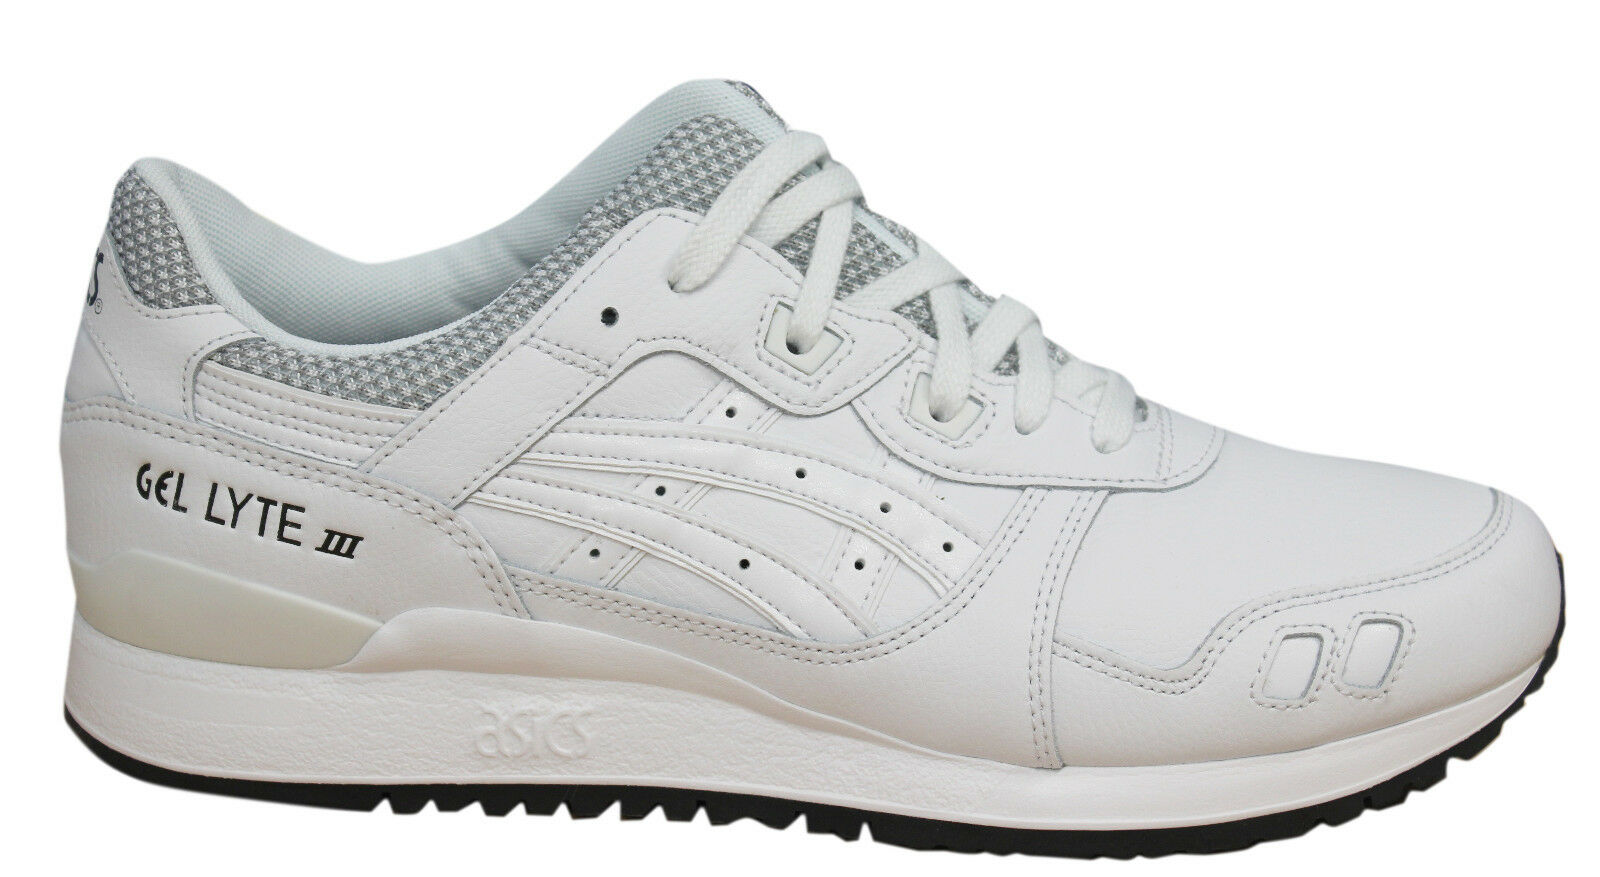 Asics Gel-Lyte III Lace Up Shoes BWhite Leather Mens Trainers HL701 0101 M14